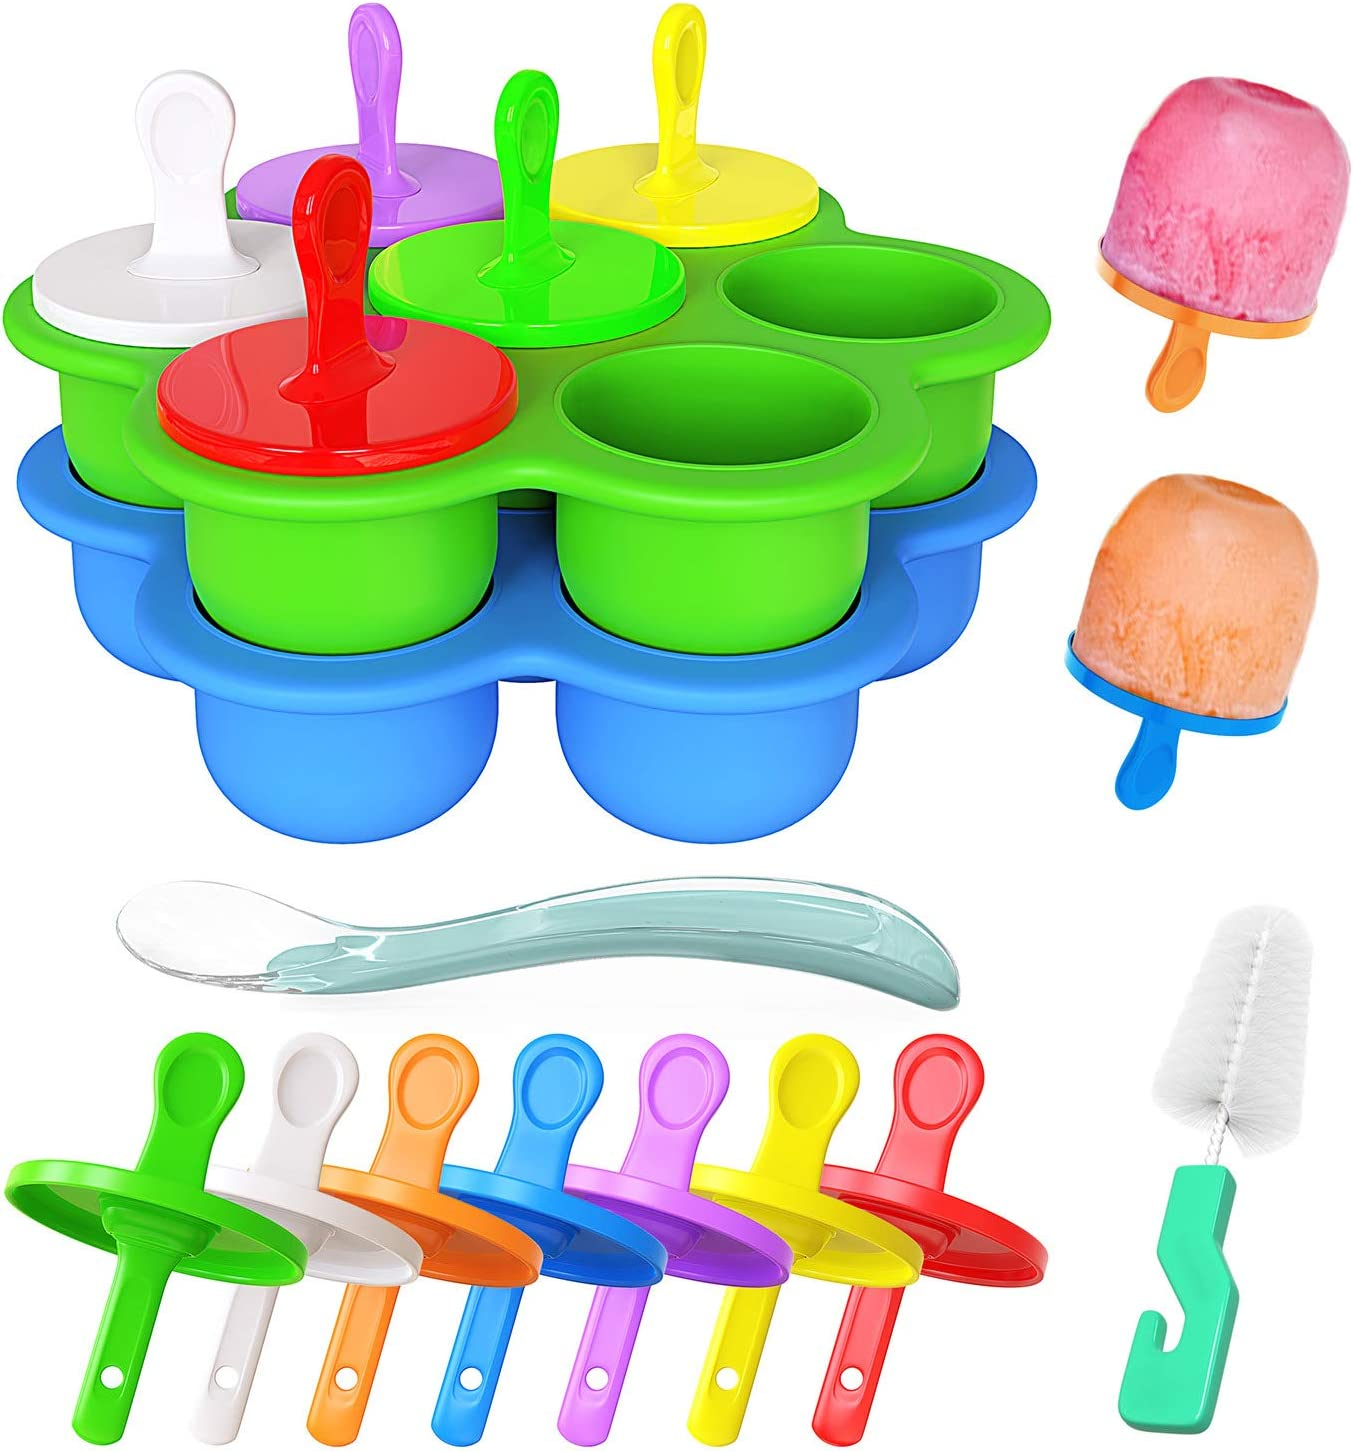 Ozera 2 Pack Silicone Popsicle Molds, Mini 7-cavity Ice Pop Molds, Food Grade DIY Popsicle Molds as Baby Food Freezer Trays, Come with Silicone Spoon and Cleaning Brush